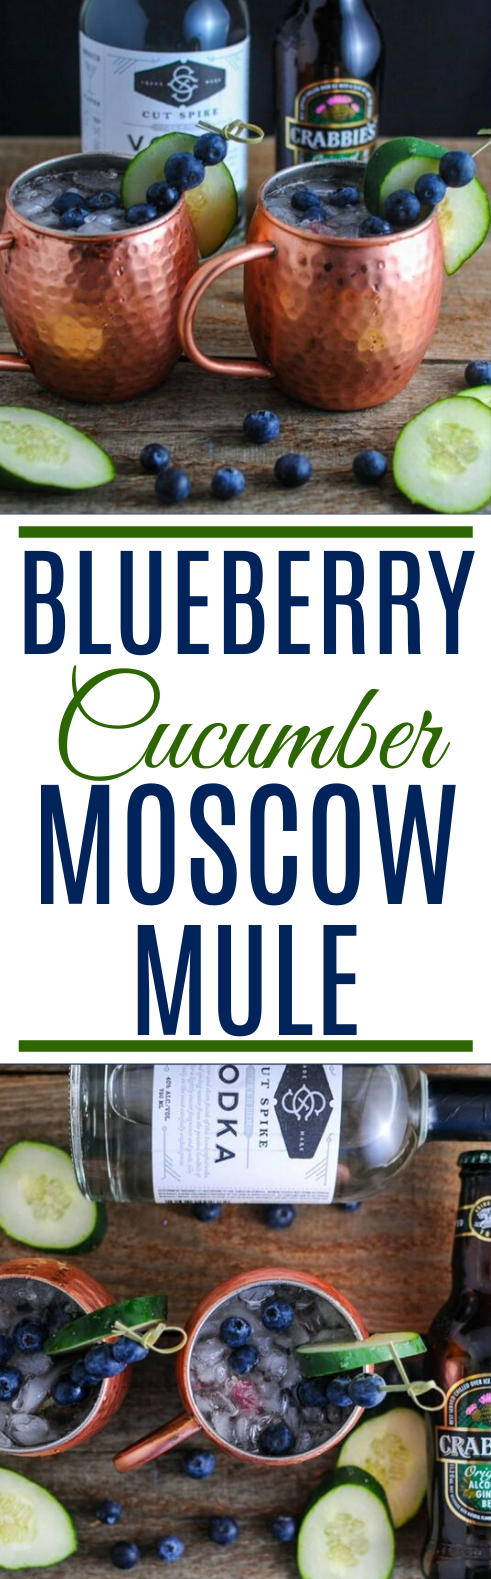 Blueberry Cucumber Moscow Mule #drinks #alcohol #refreshing #summer #beverages